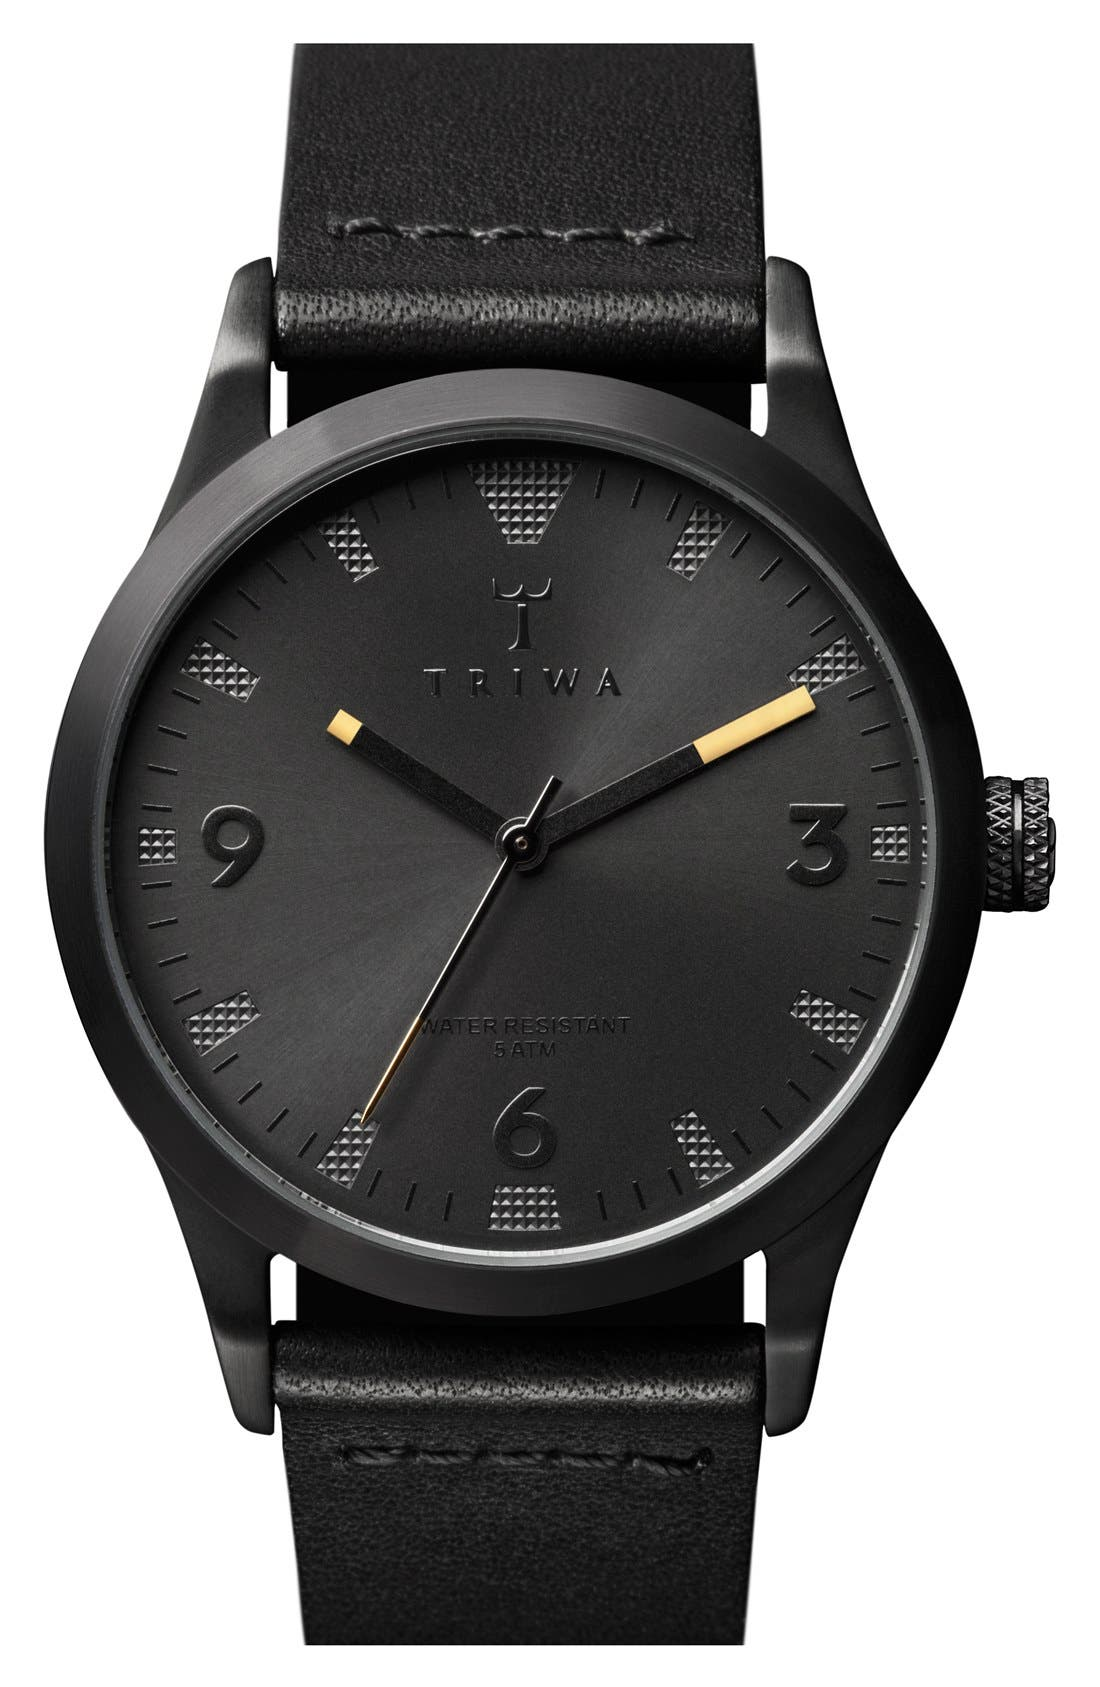 TRIWA Sort of Black Leather Strap Watch, 38mm